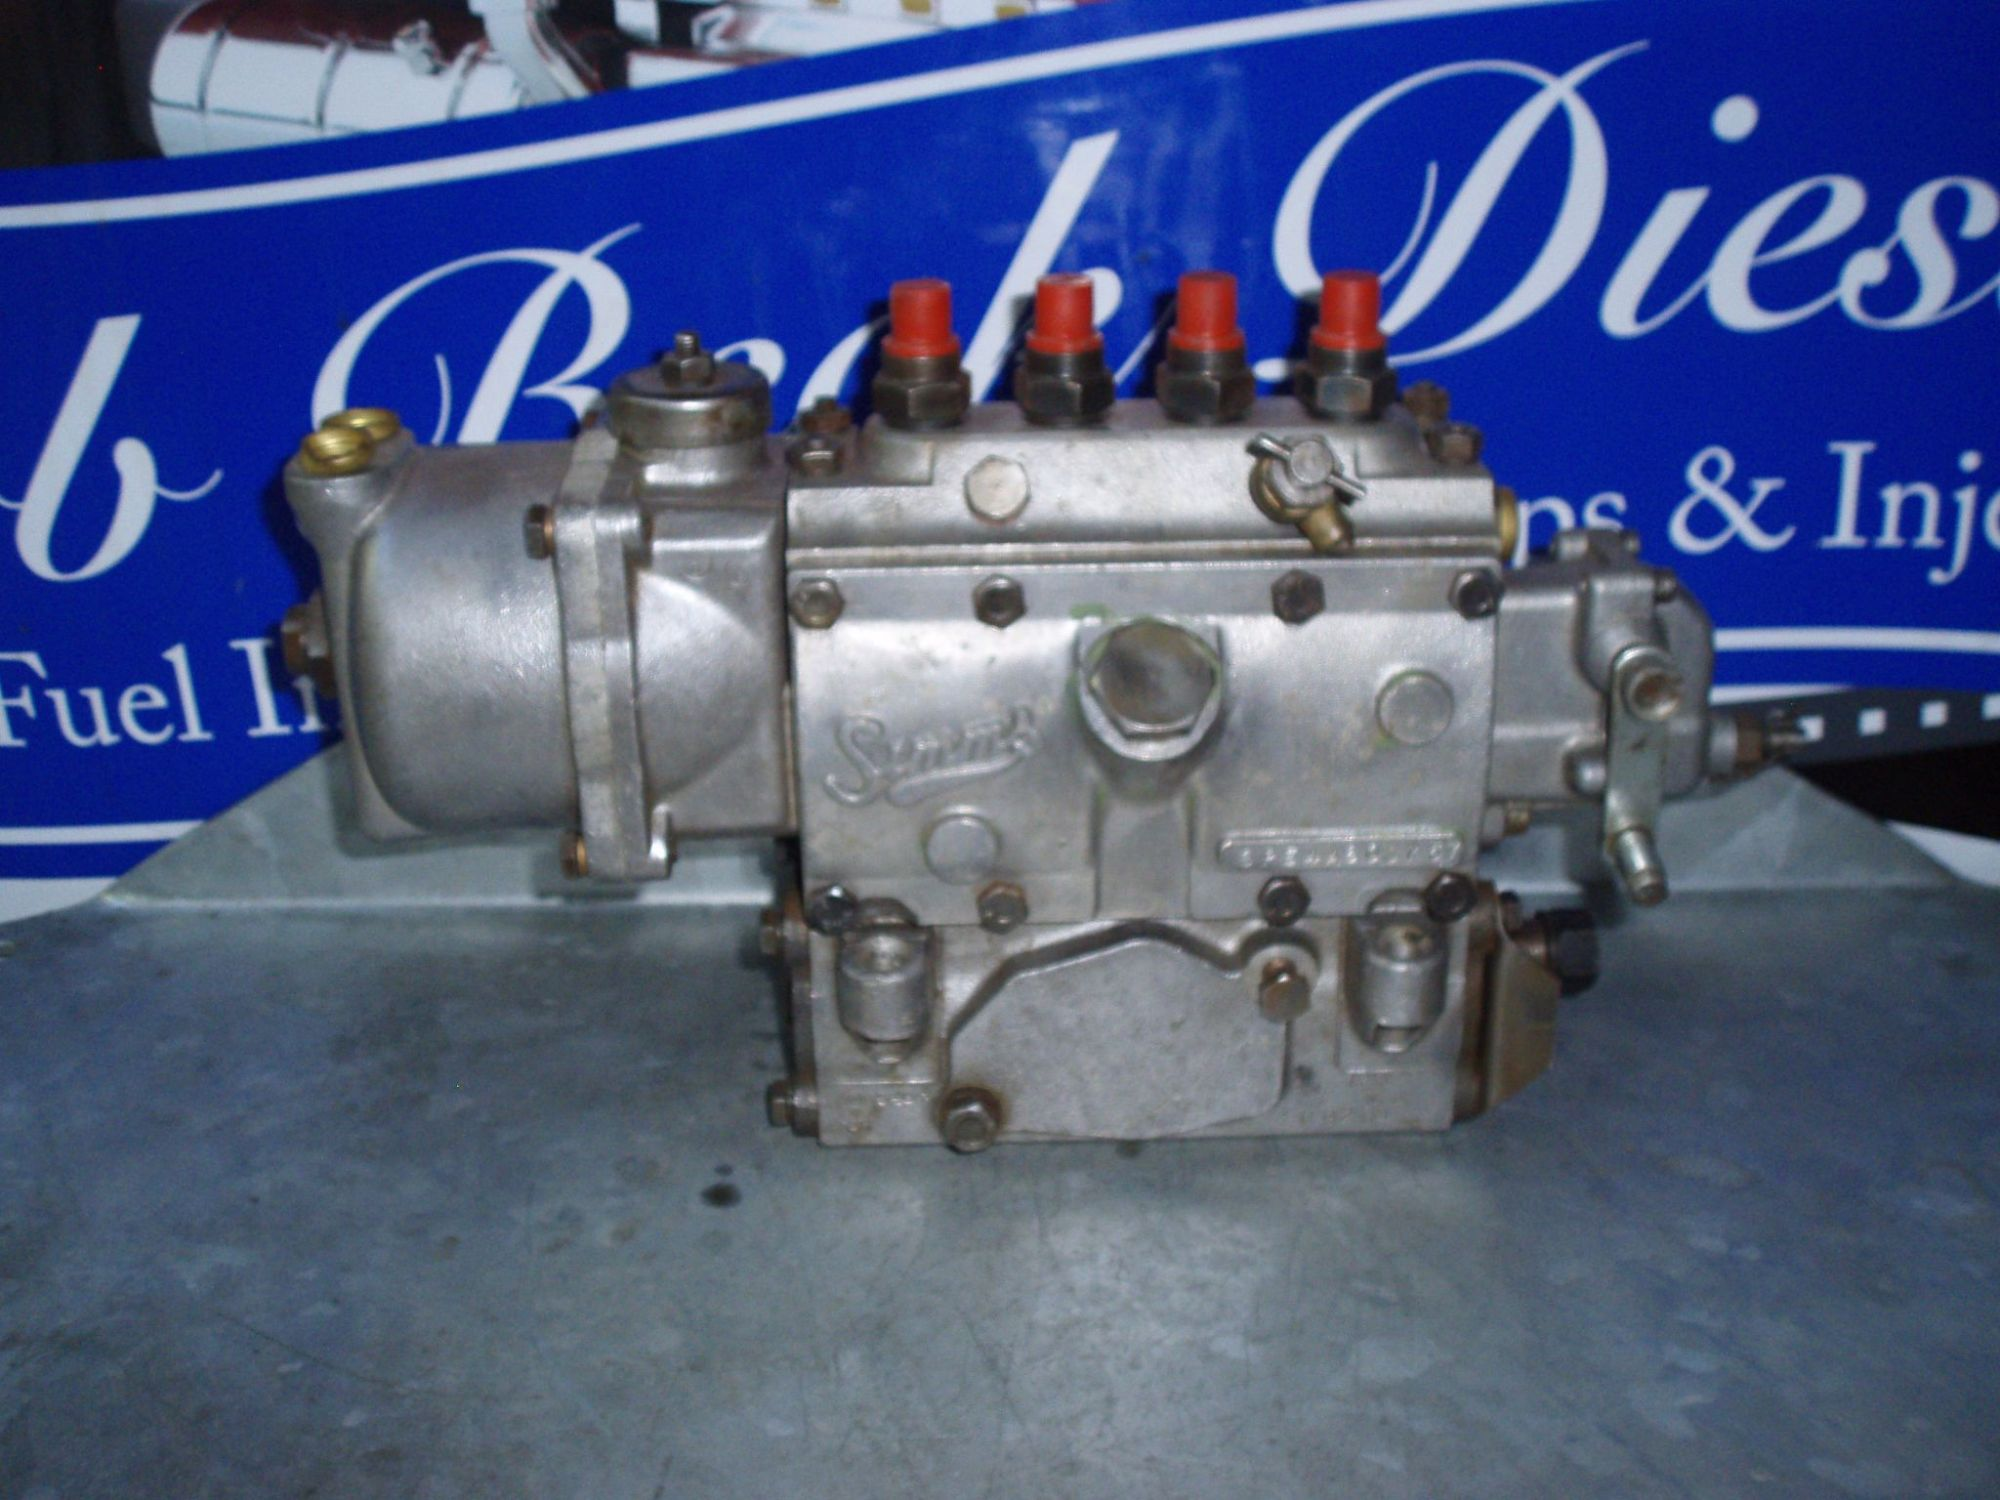 hight resolution of fordson major 4110 piston fordson major e1a engine the classic machinery network super major diaphragm fordson injector pump recondition fordson major